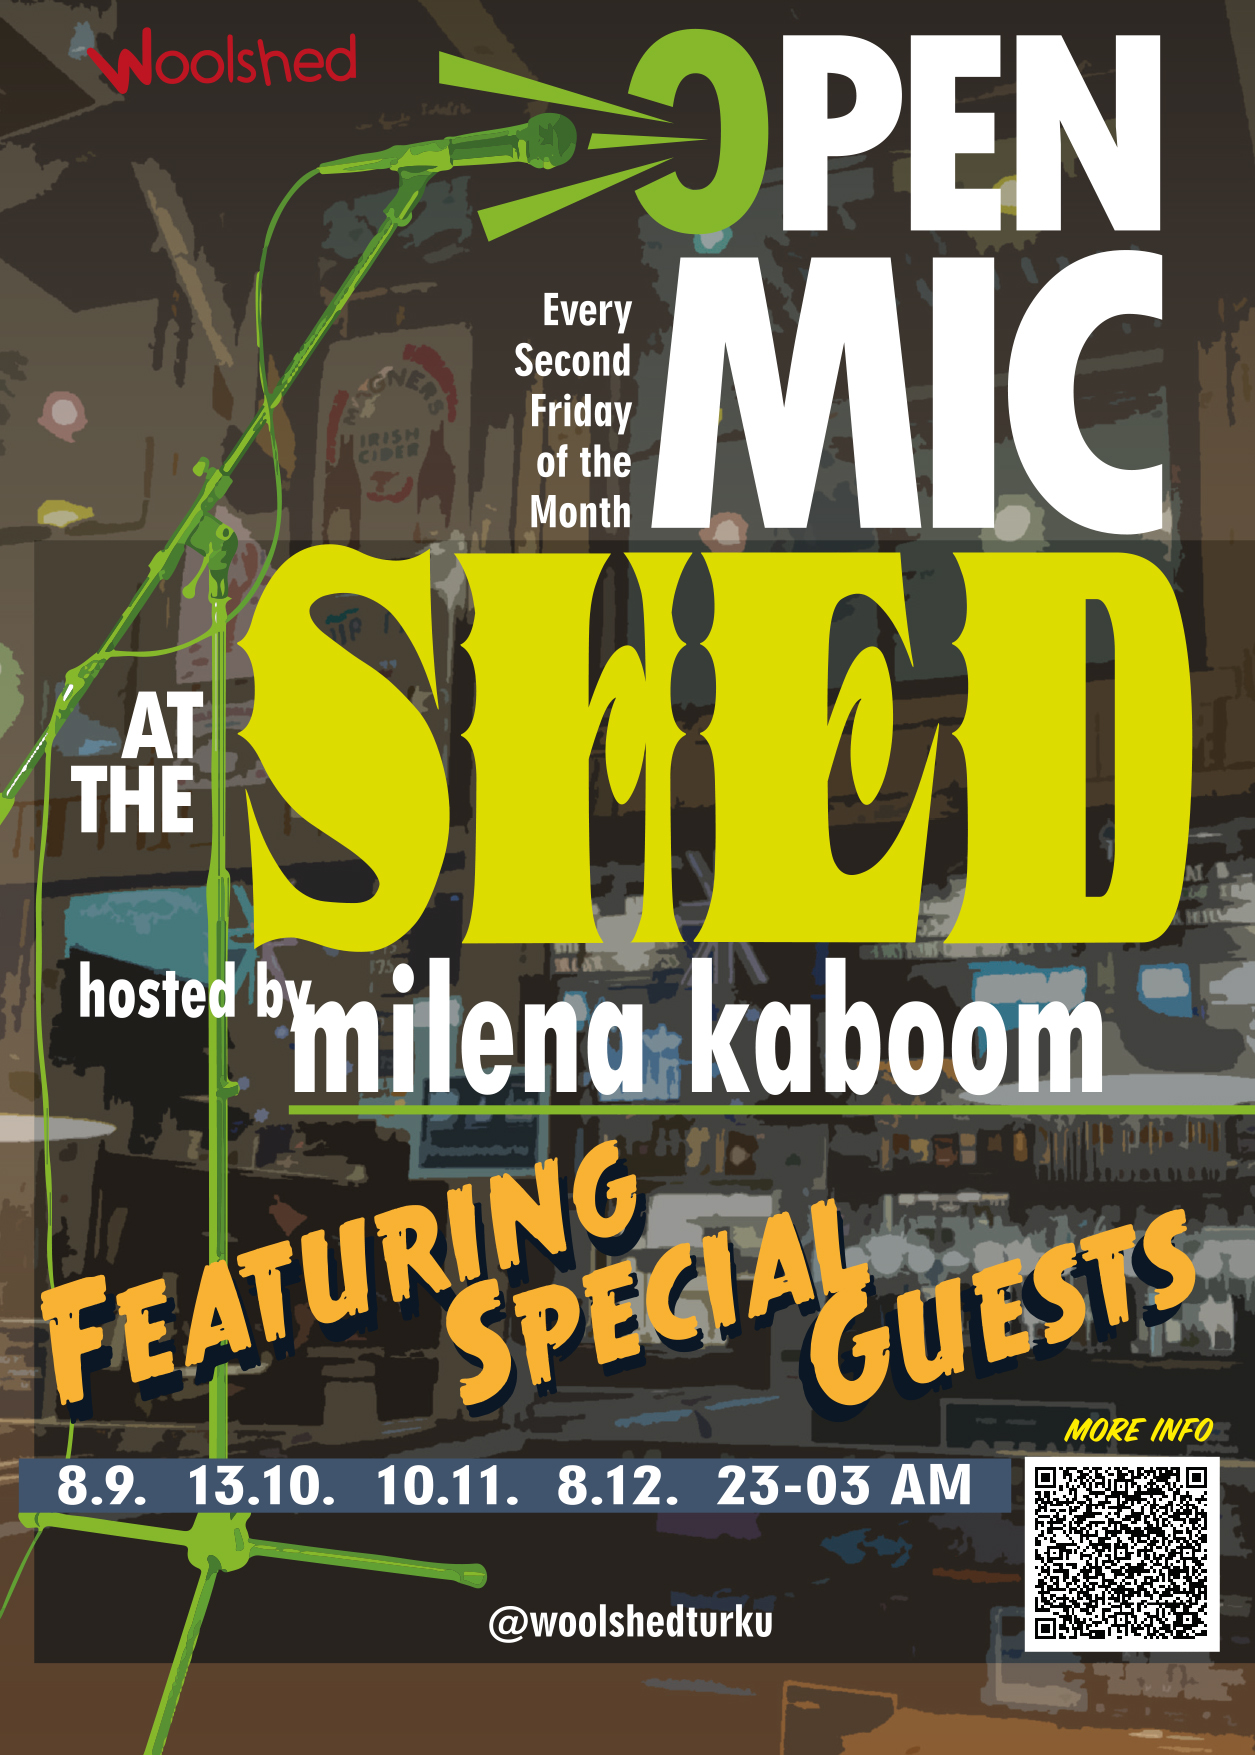 woolshed open mic